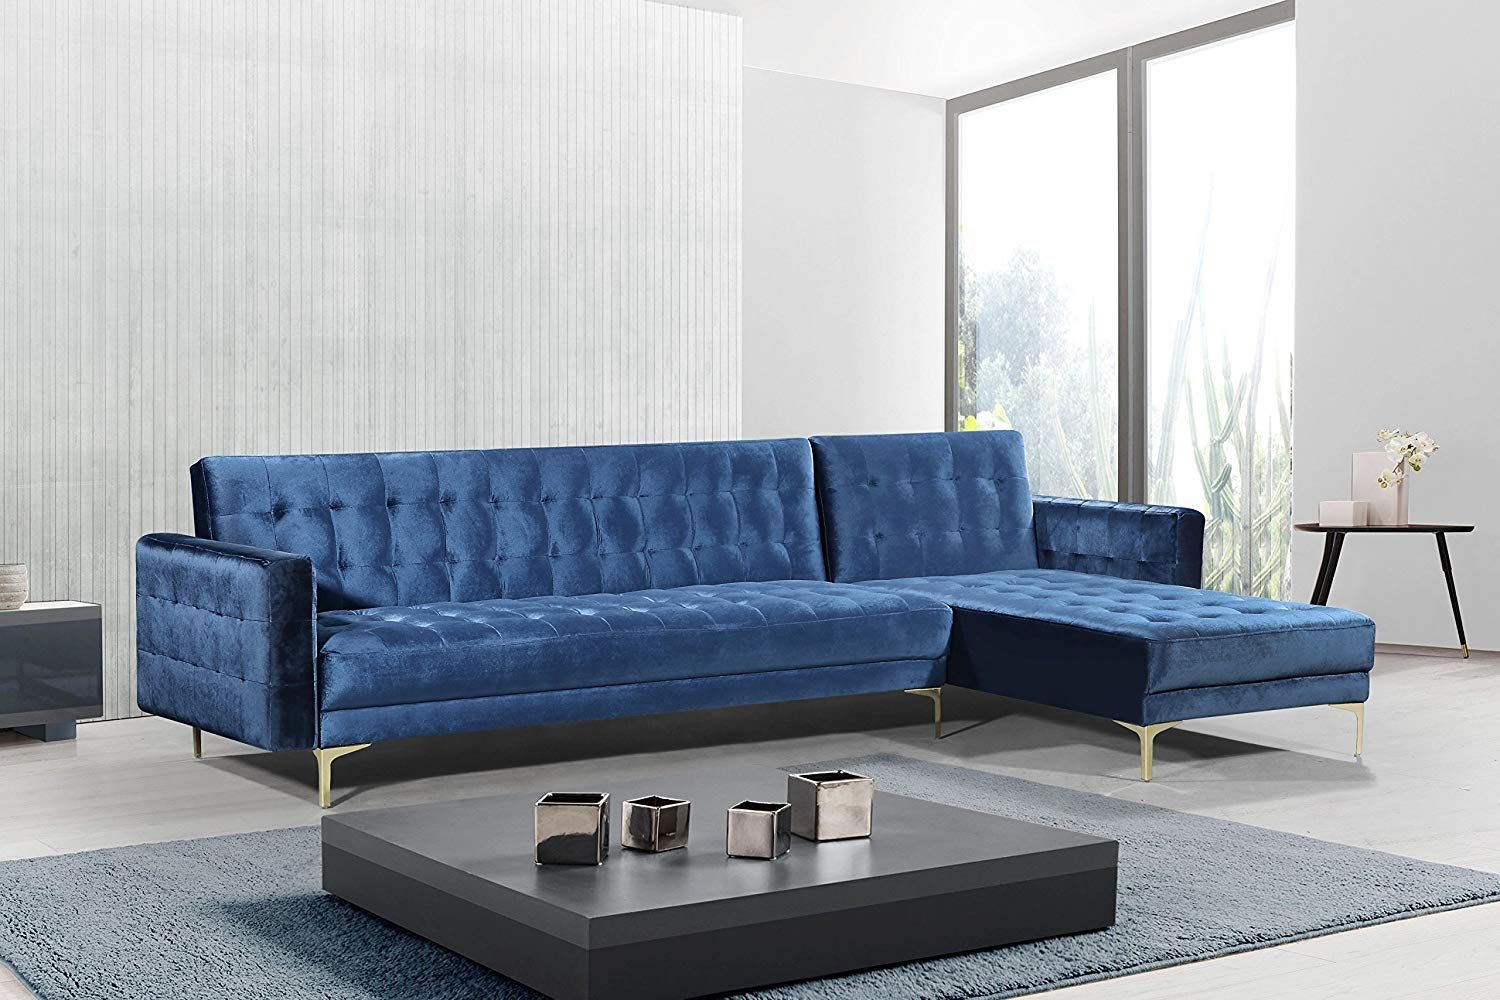 Tufted Velvet L Shaped Couch Sleeper Sofa L Shape Chaise Tufted Velvet Upholstered Gold Tone Metal Y Sectional Sleeper Sofa Sectional Sofa Chic Home Design